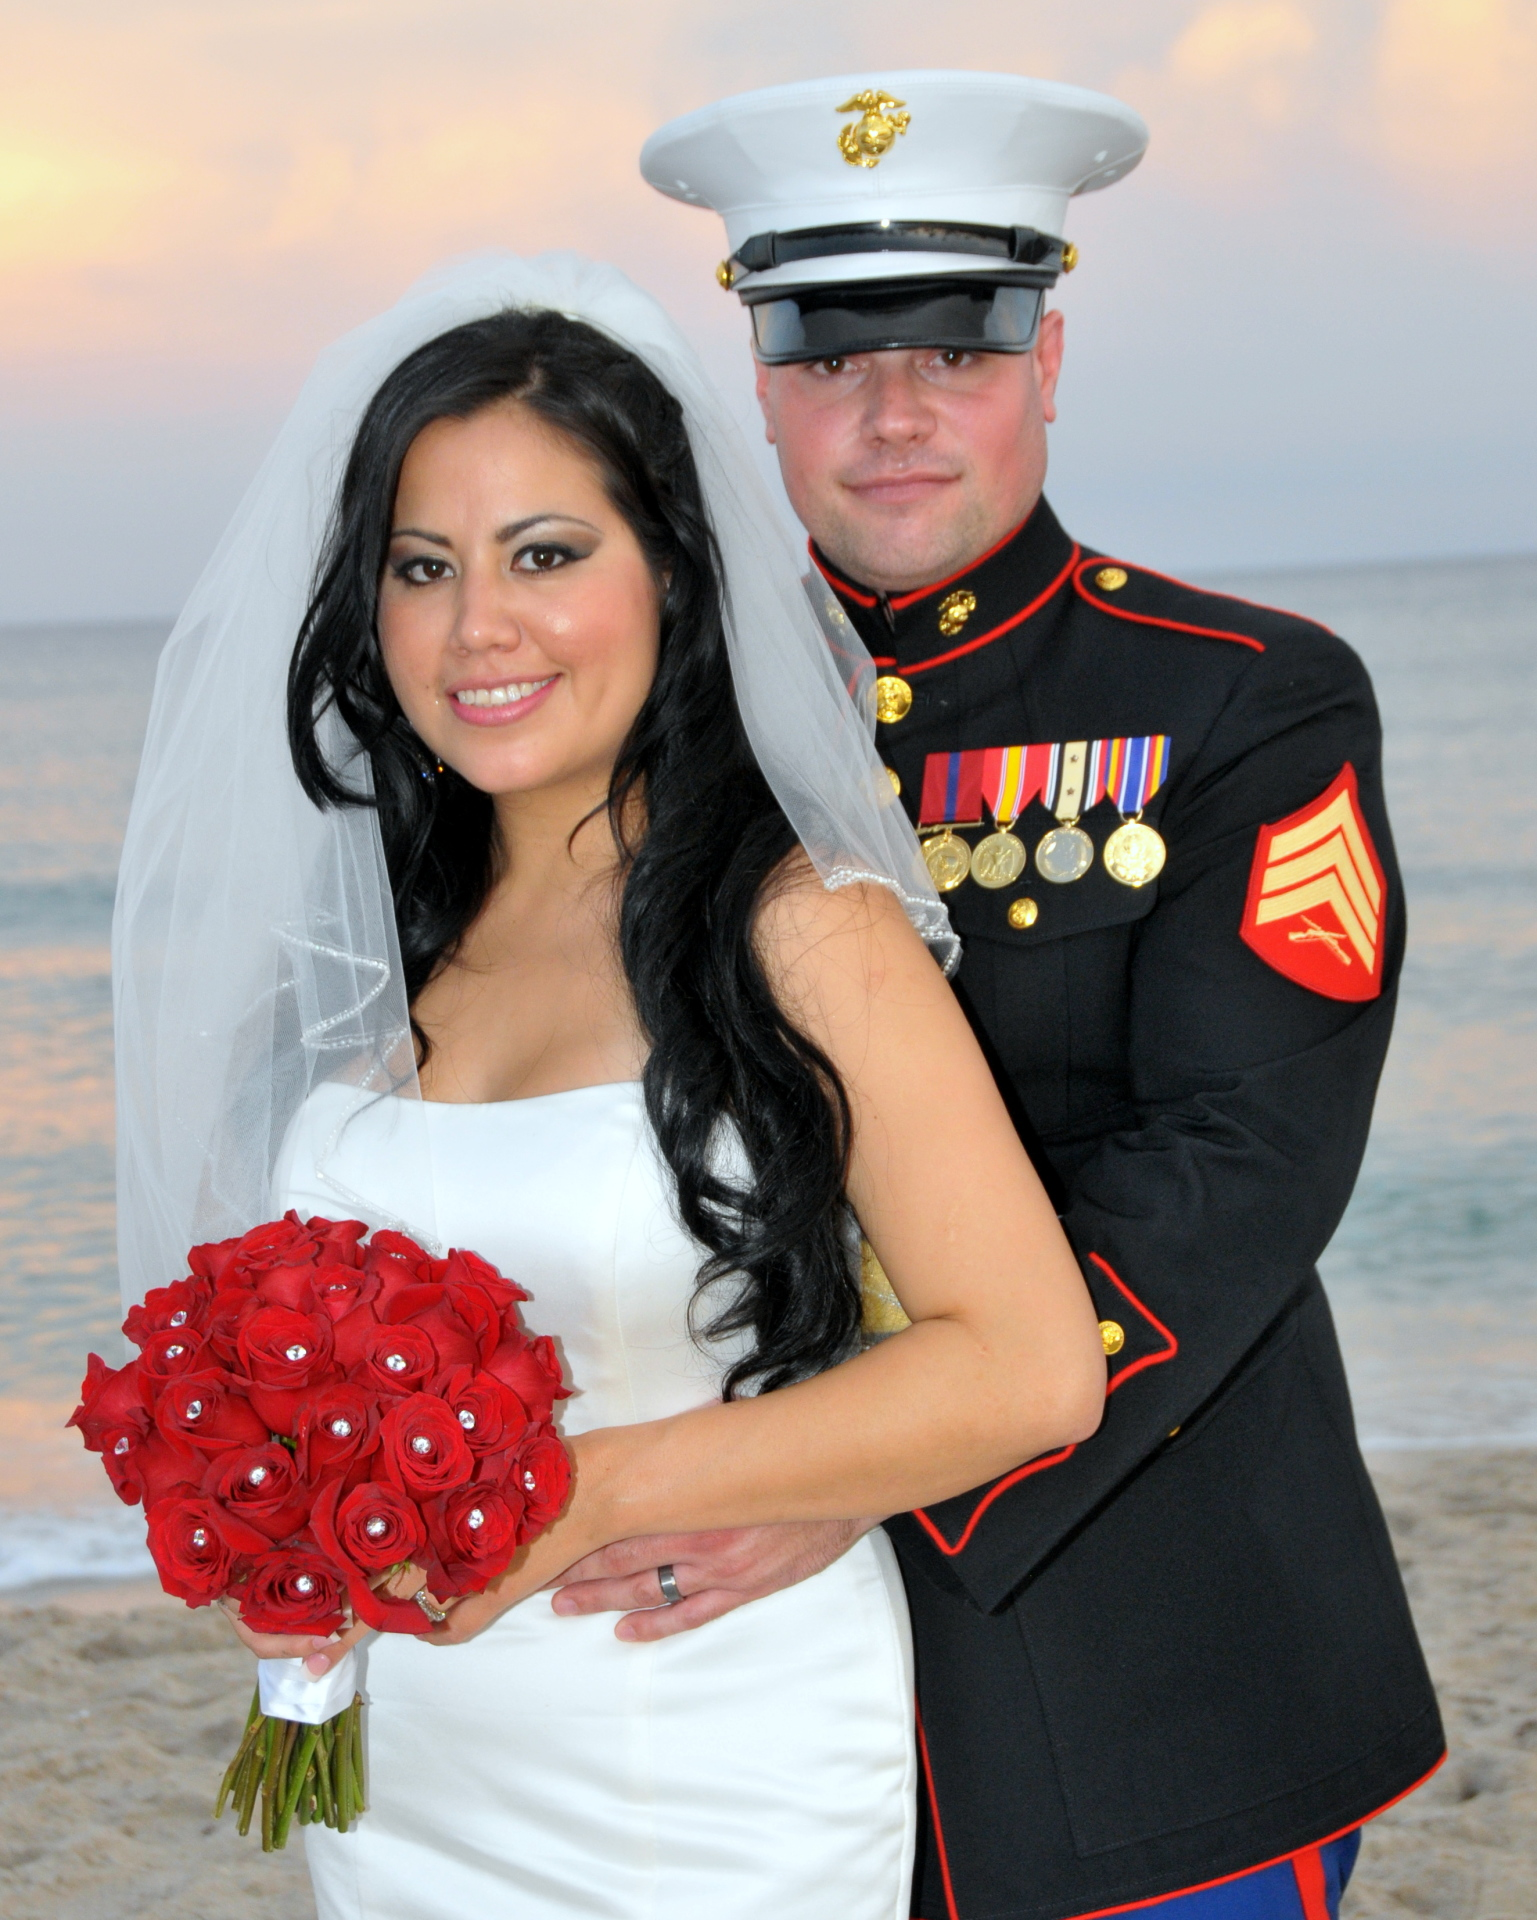 wedding, photos, engagement, destination wedding, boca raton, jewish wedding, ethnic wedding